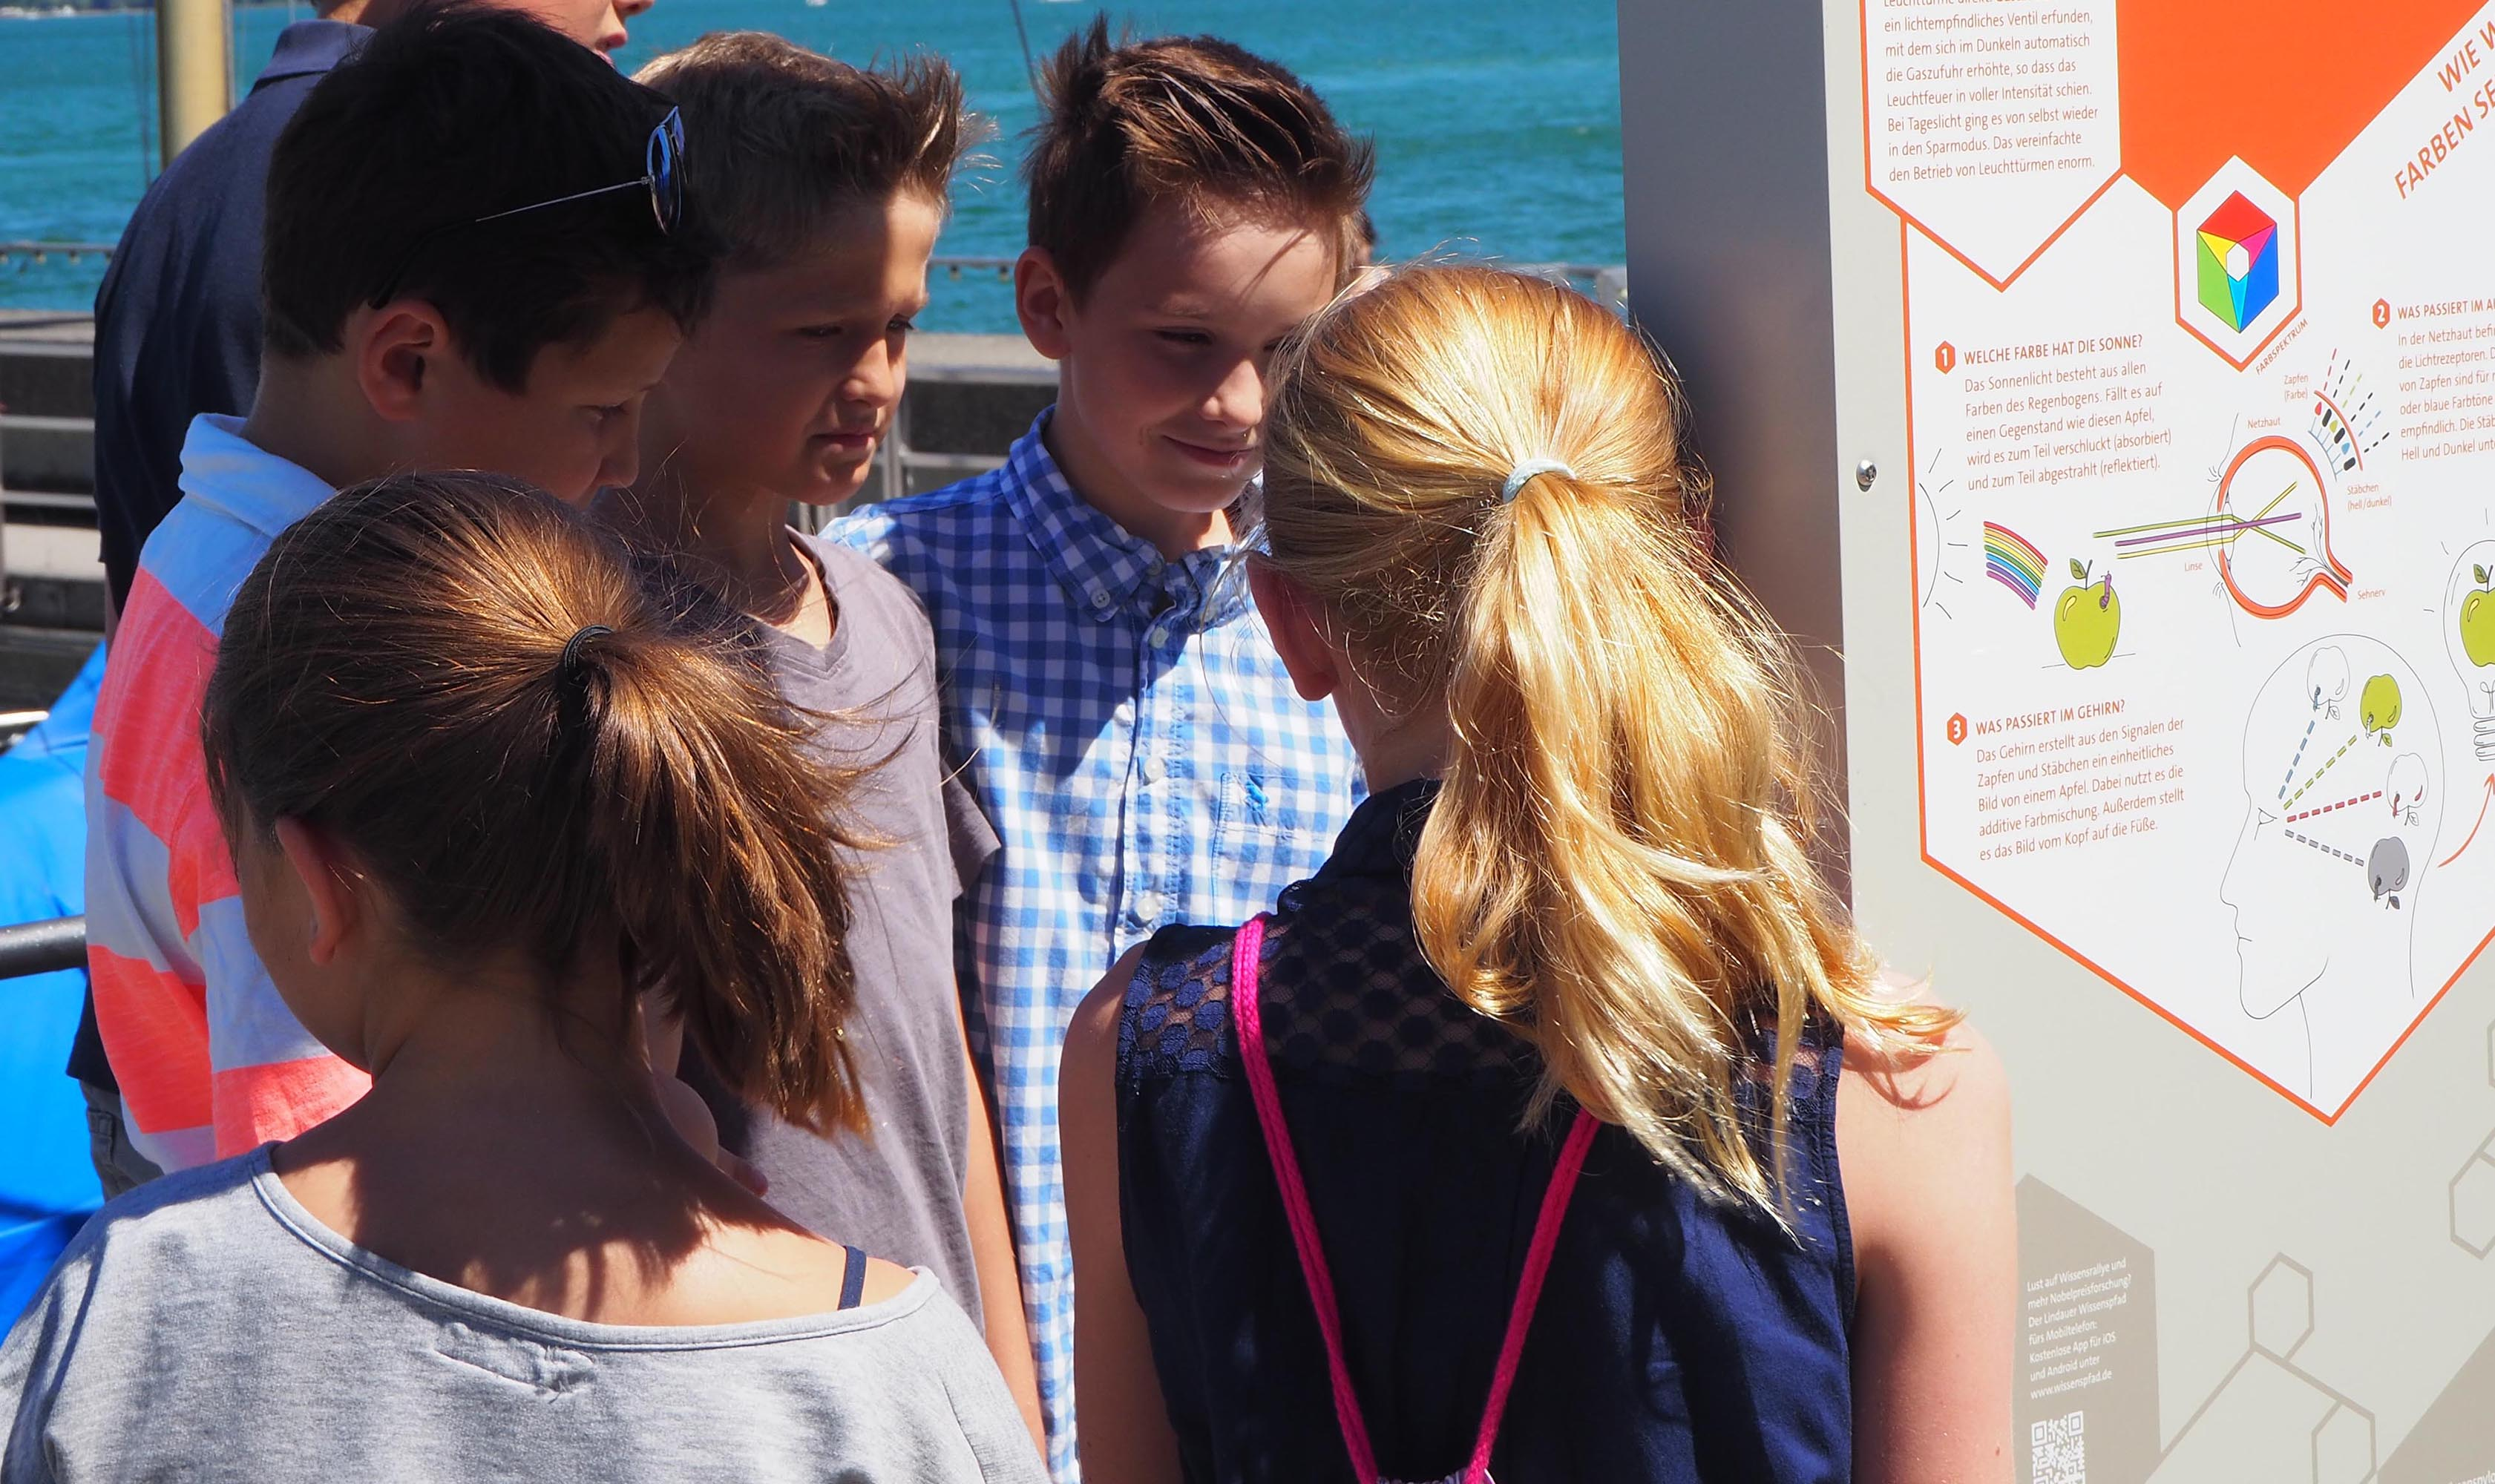 Welche Farbe hat die Sonne? Eine Gruppe von Schülern entdeckt den Lindauer Wissenspfad. What colour is the sun? A group of pupils discovers the Lindau Science Trail.